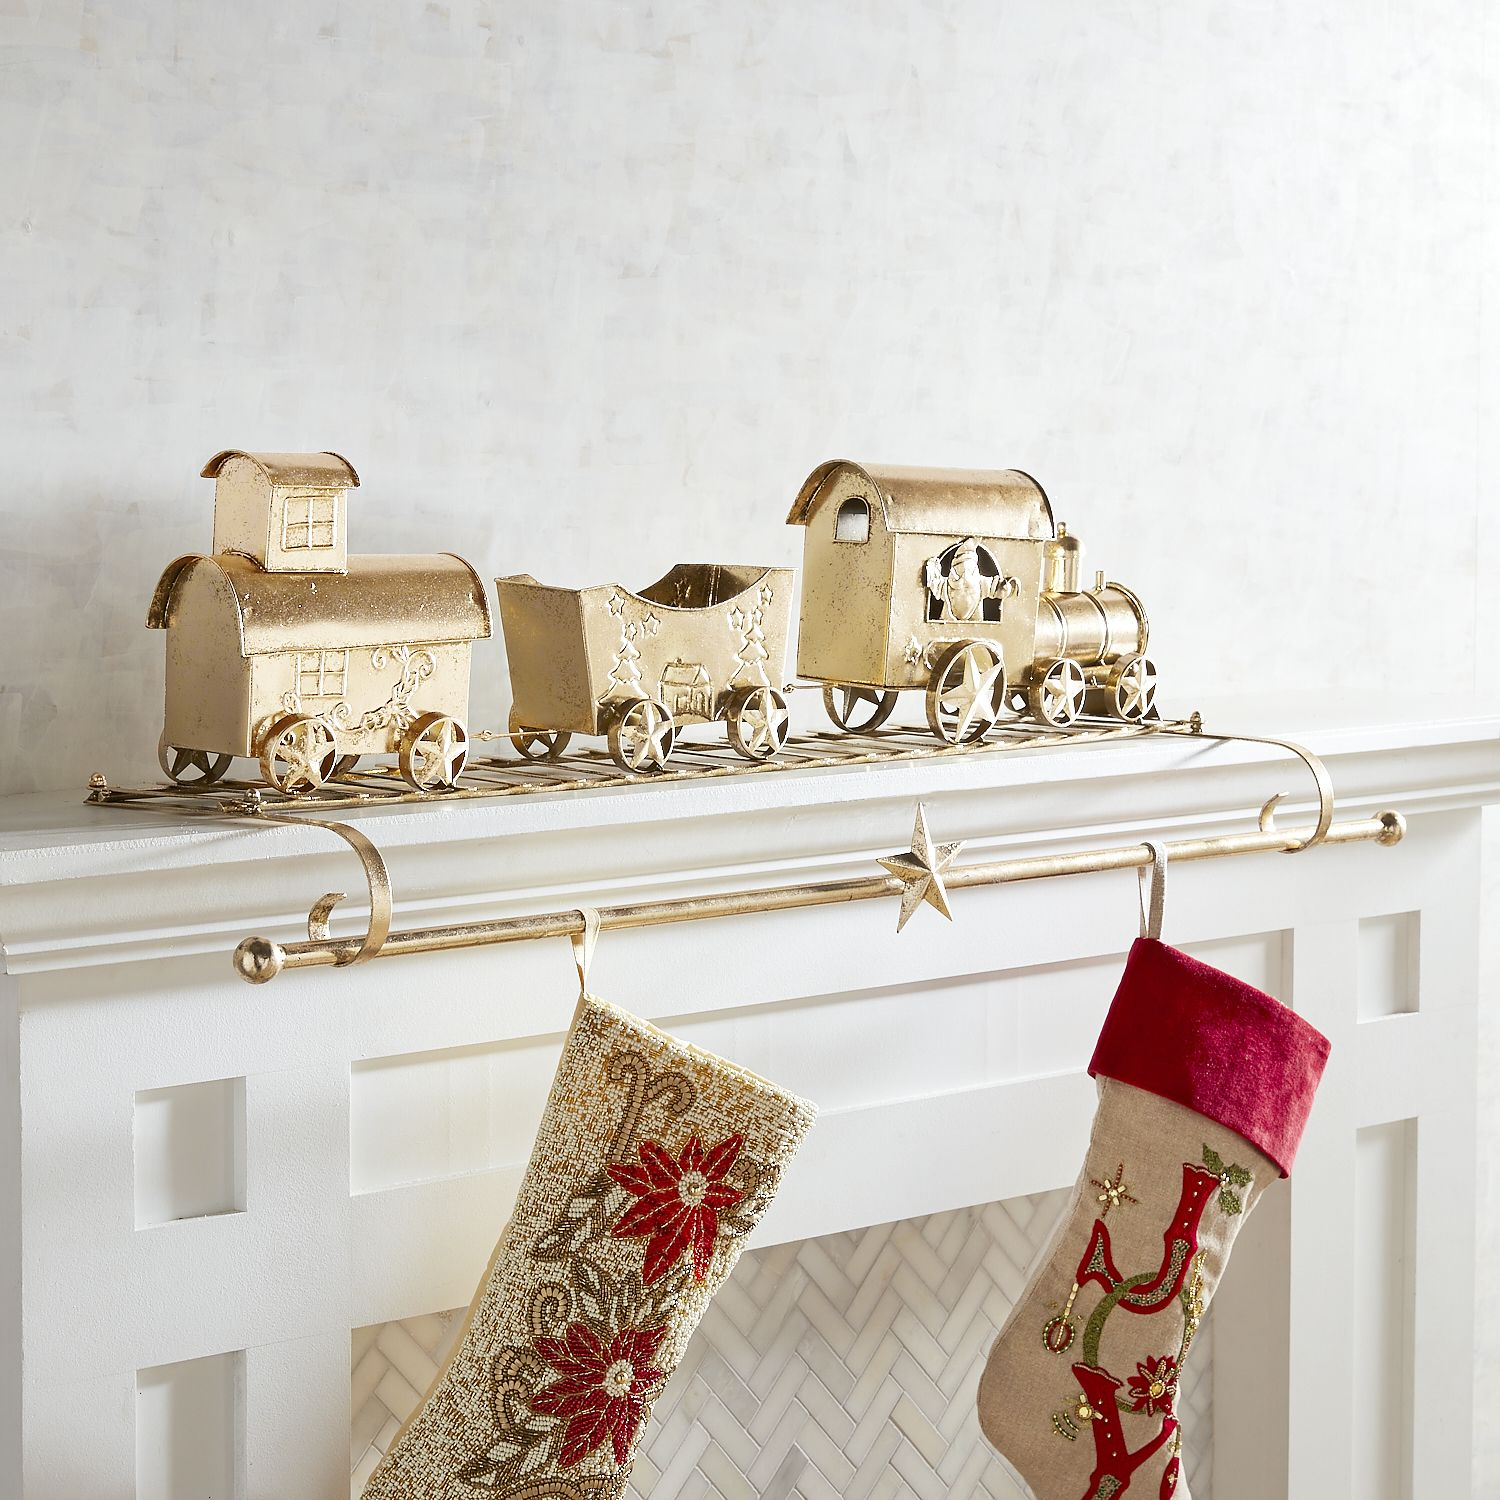 These stocking holders will rock your socks off — and hold your Christmas stockings in place.